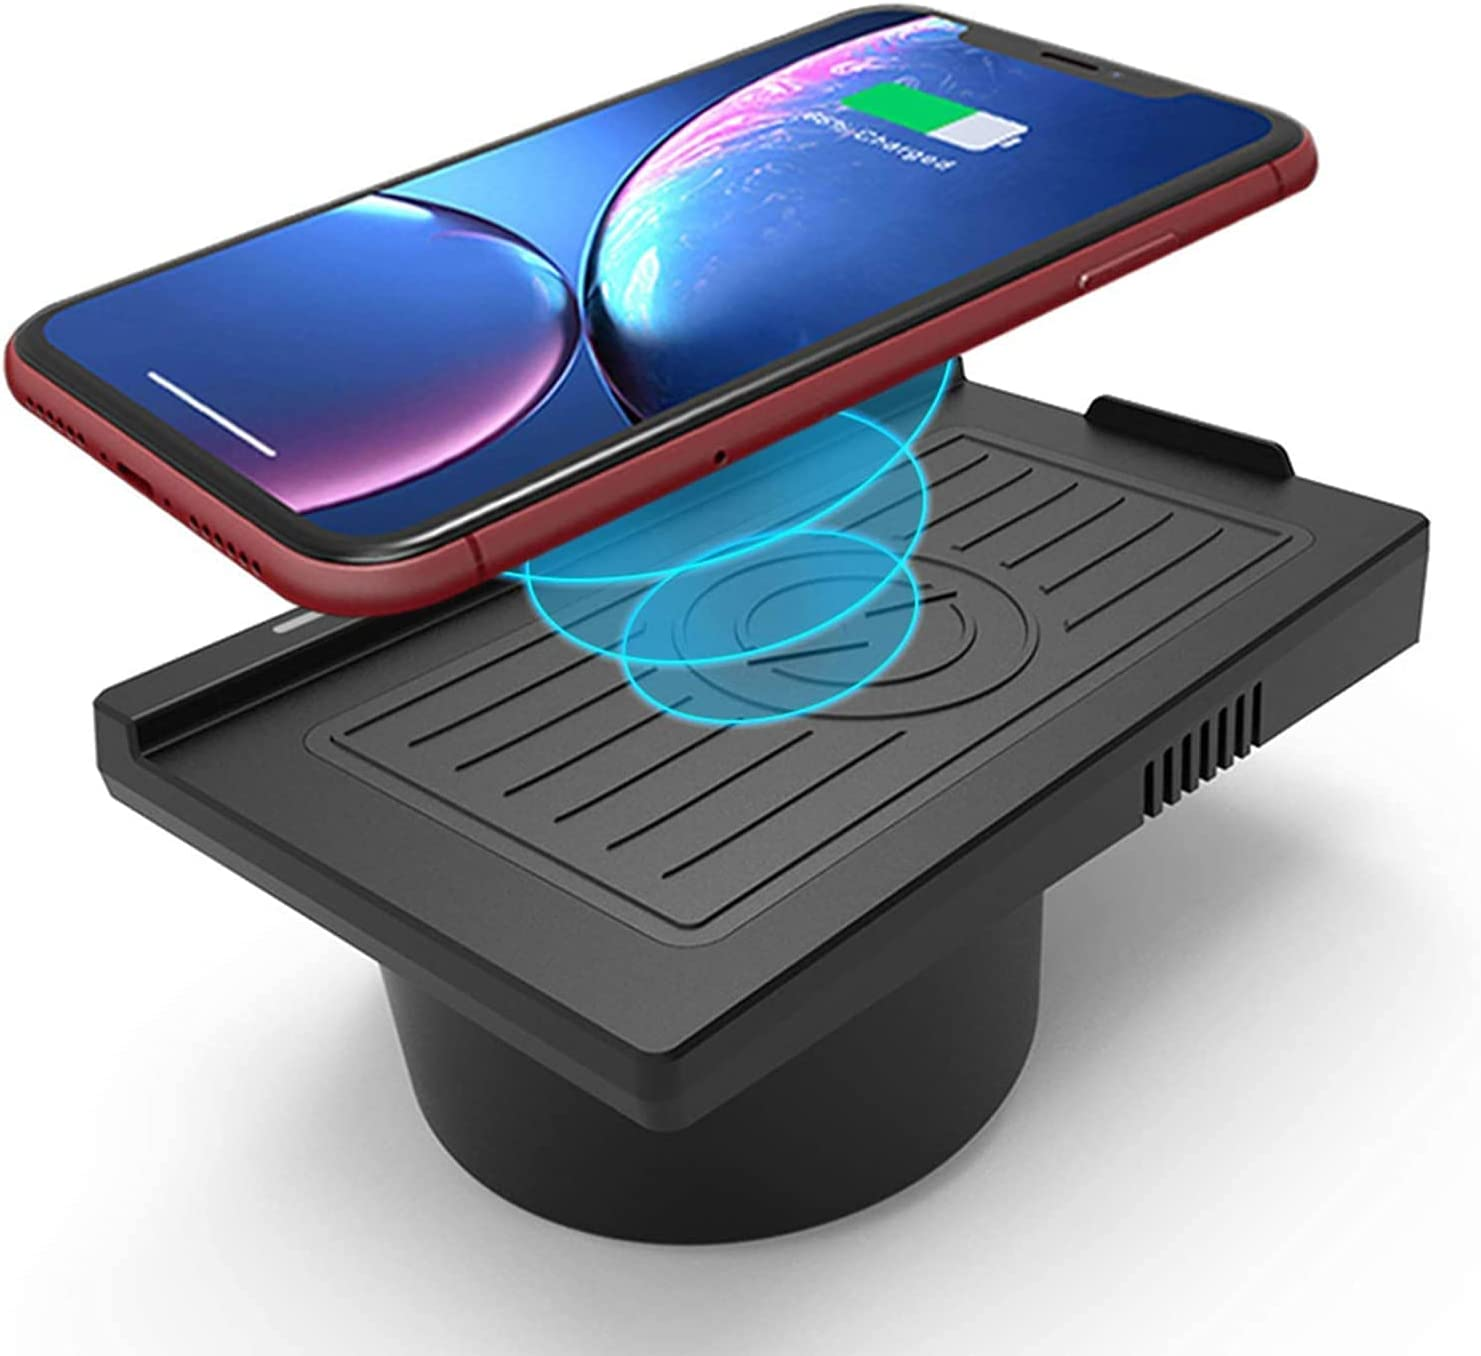 Car Wireless Charger Super beauty product restock quality top! for X5 New sales X6 2014 C 2017 Center 2016 2015 2018